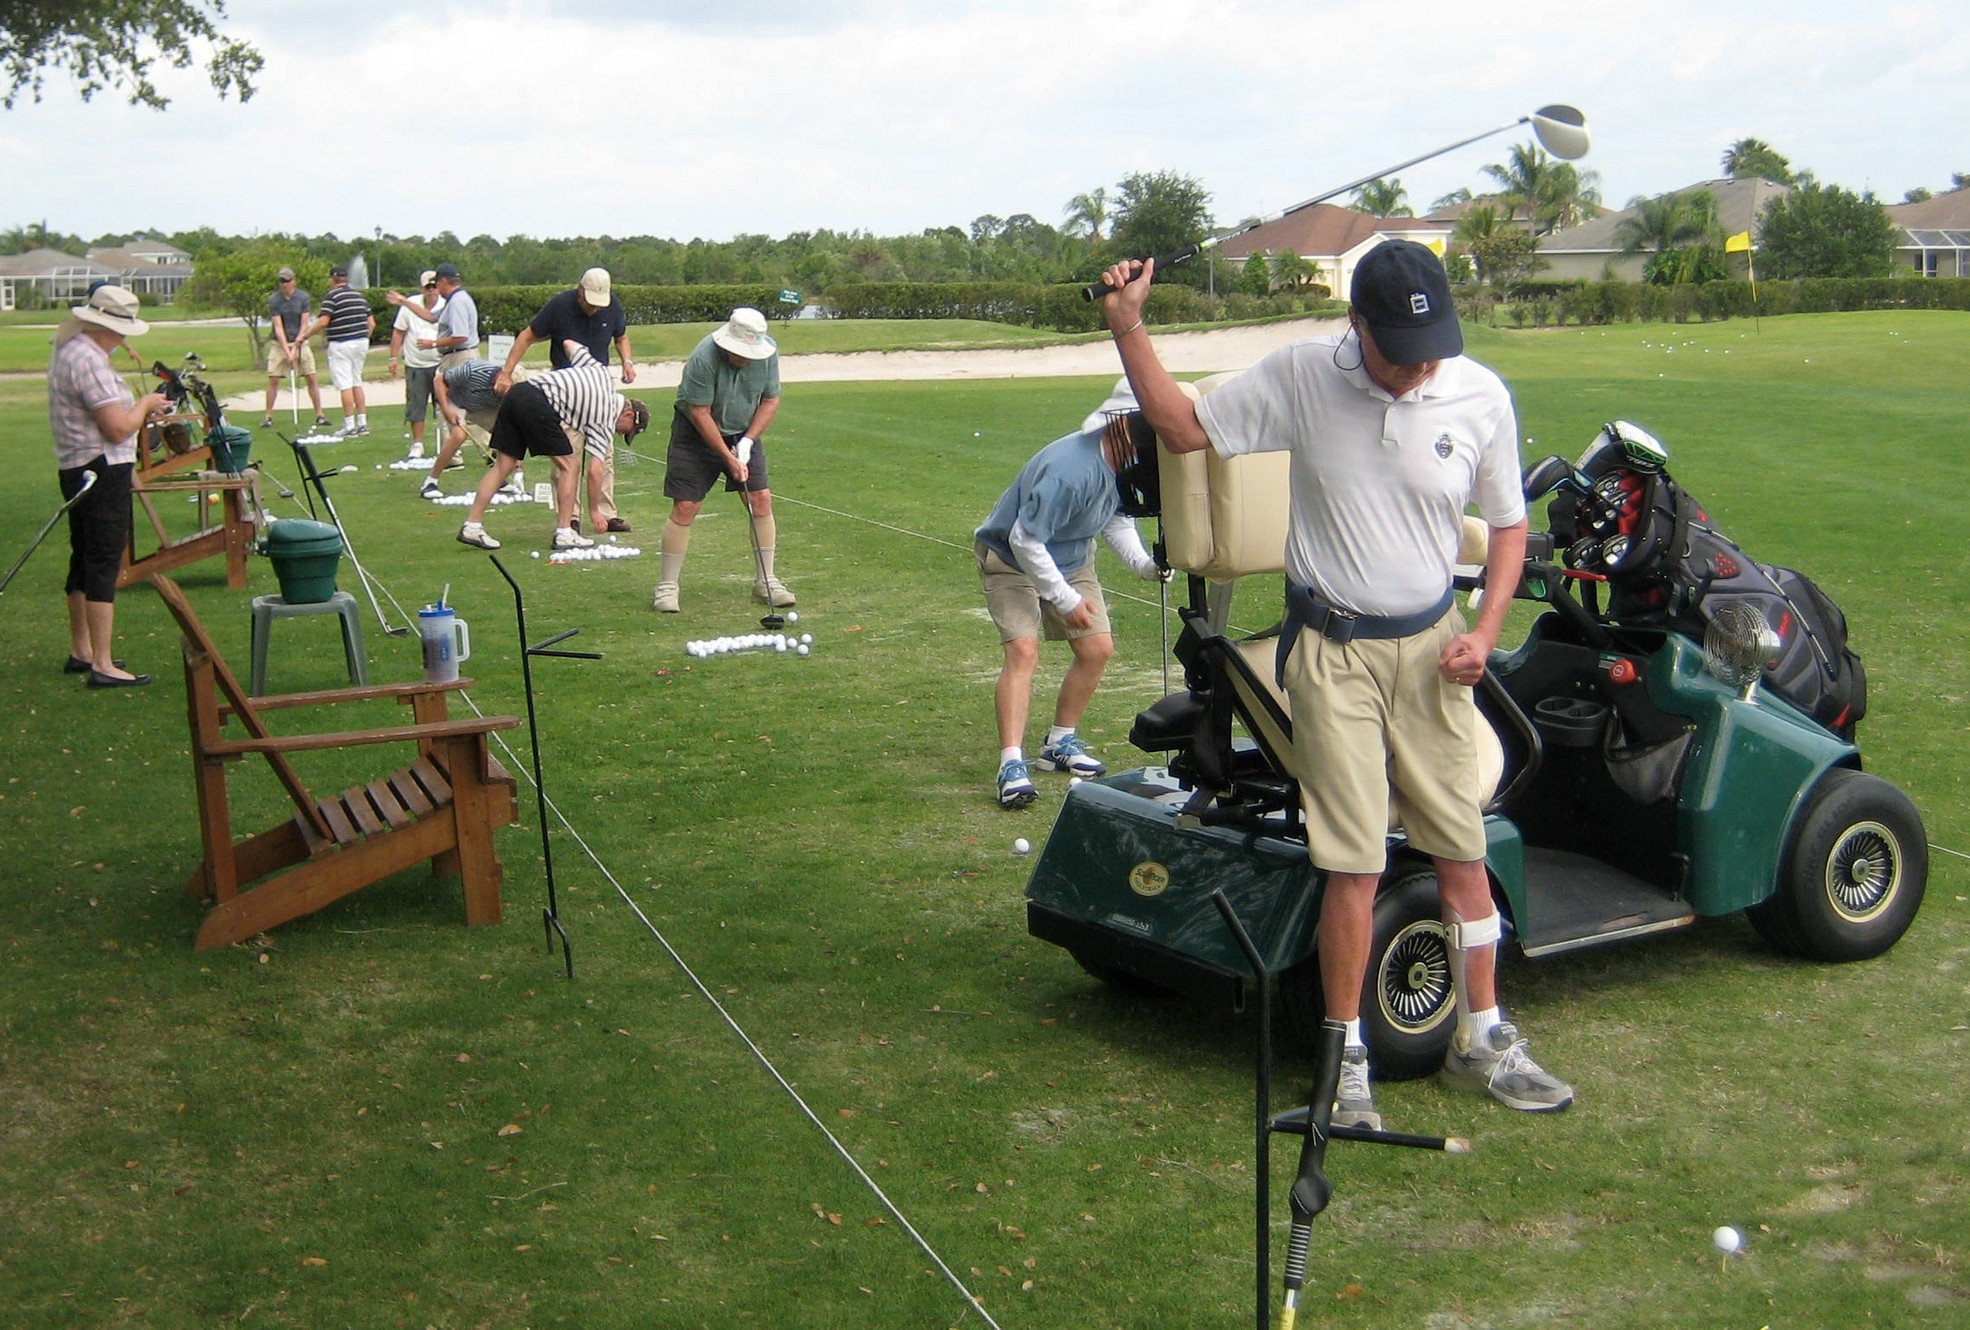 How do you approach teaching golfers with adaptive needs?